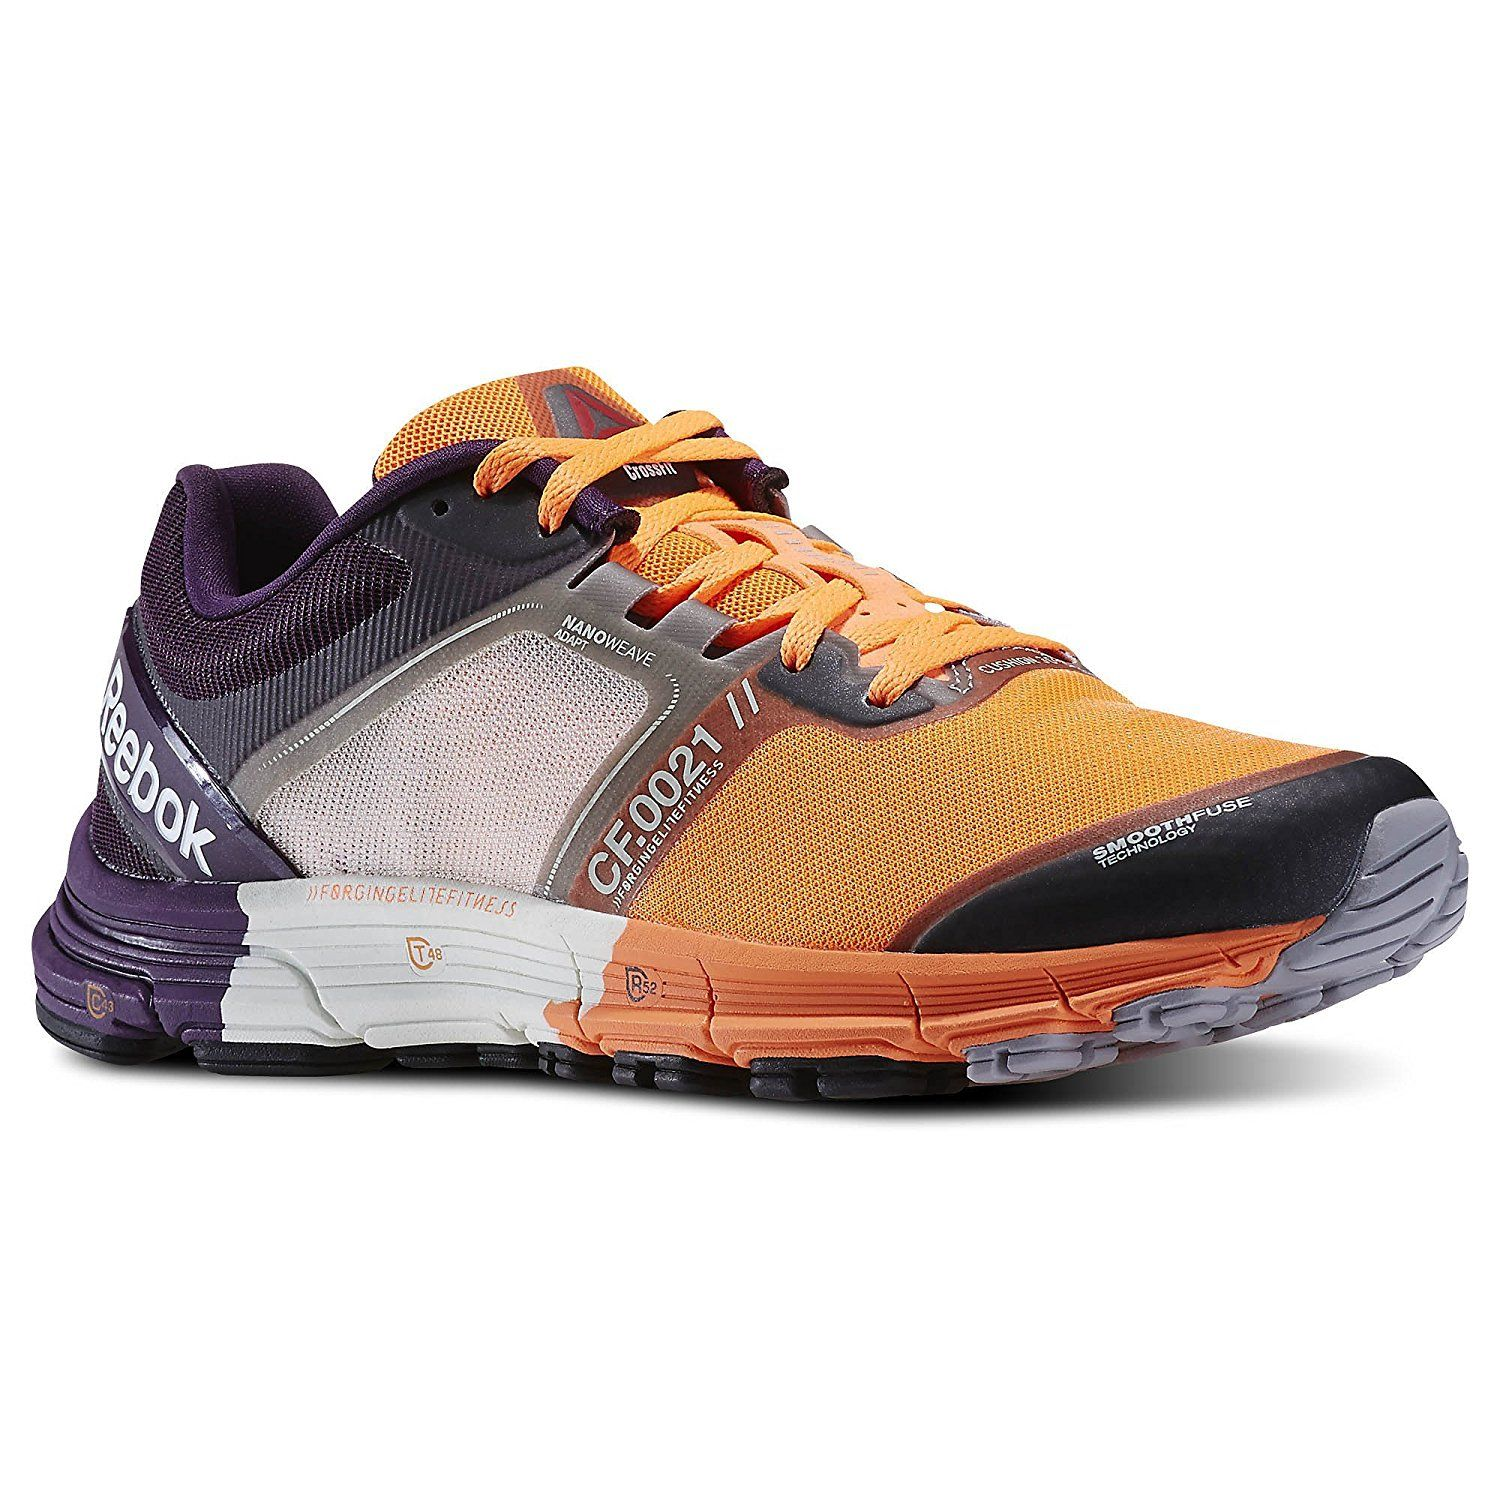 6d56859a5bdce Reebok Womens Crossfit One Crossfit Cushion 3.0 Sneakers Orange ...